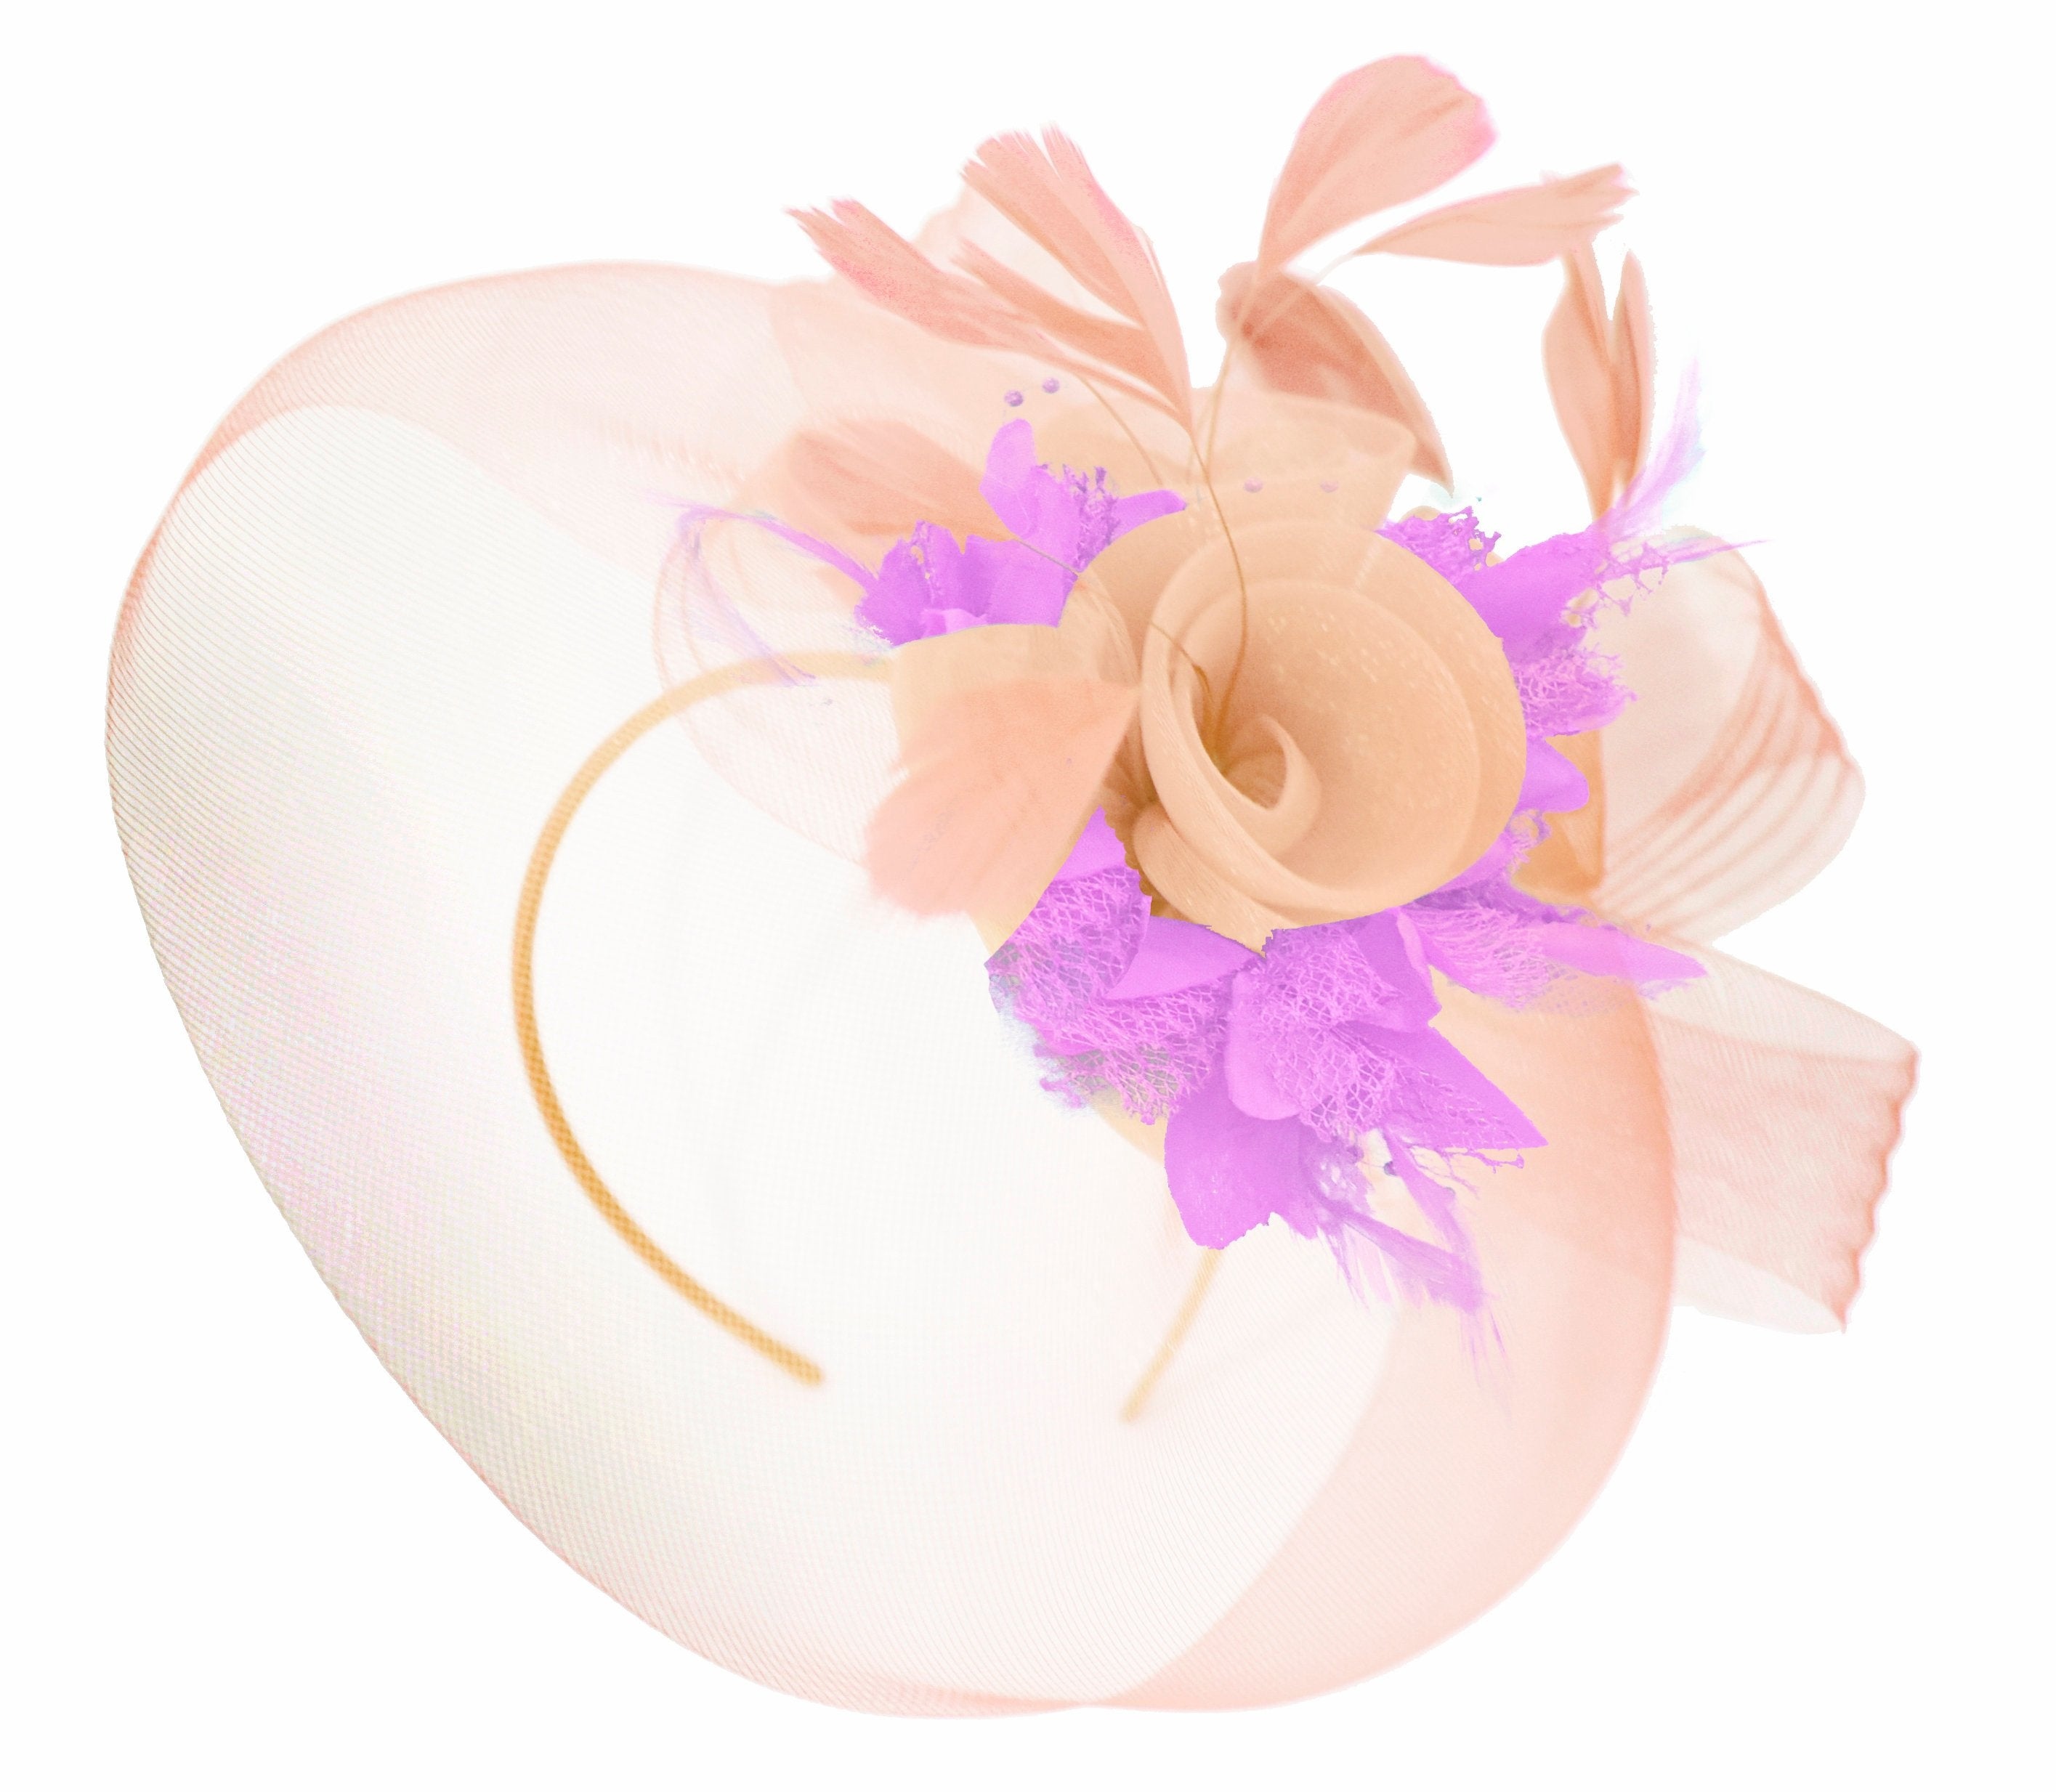 Caprilite Nude Pink Peach and Lilac Purple Fascinator Hat Veil Net Hair Clip Ascot Derby Races Wedding Headband Feather Flower